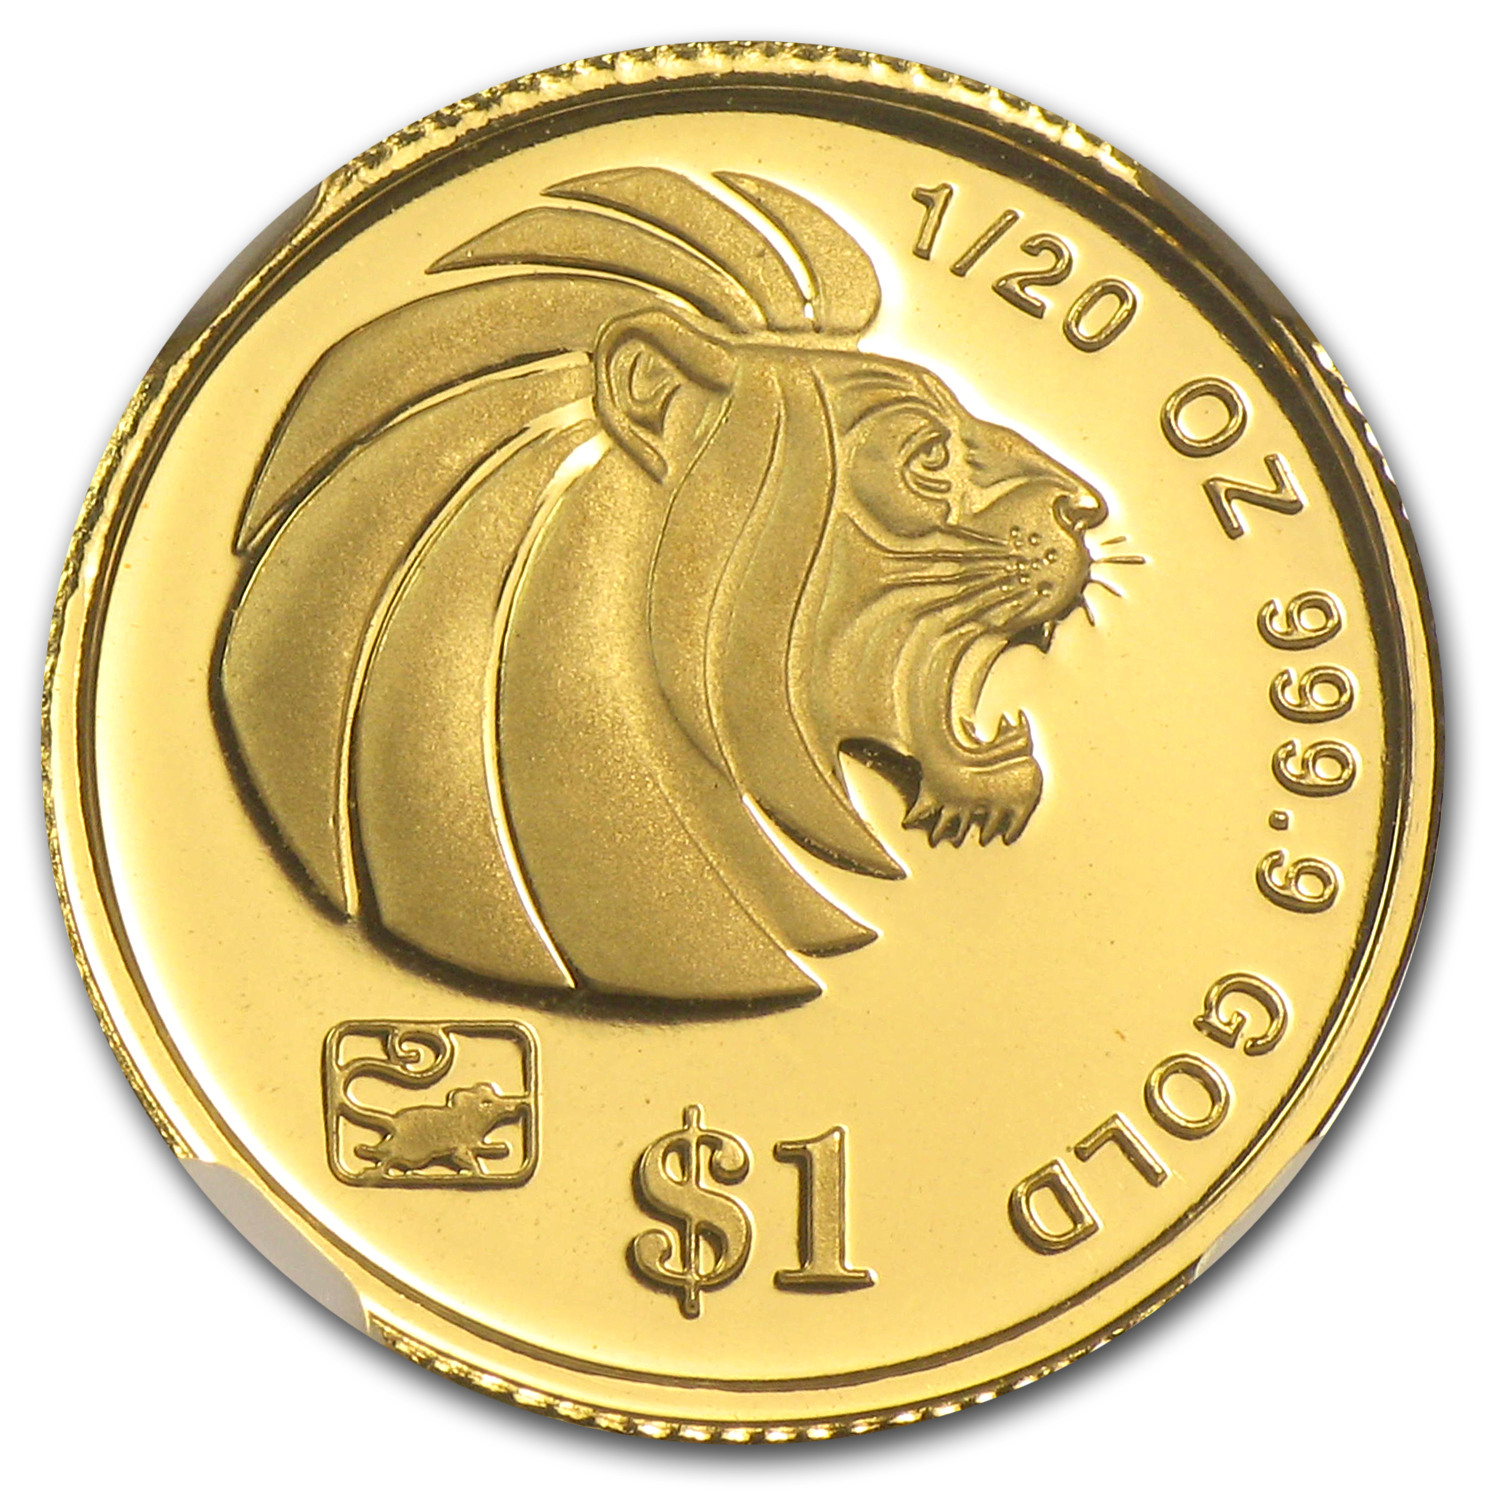 Singapore 1996 - Rat $1 1/20th Oz Gold Coin NGC PF-70UC